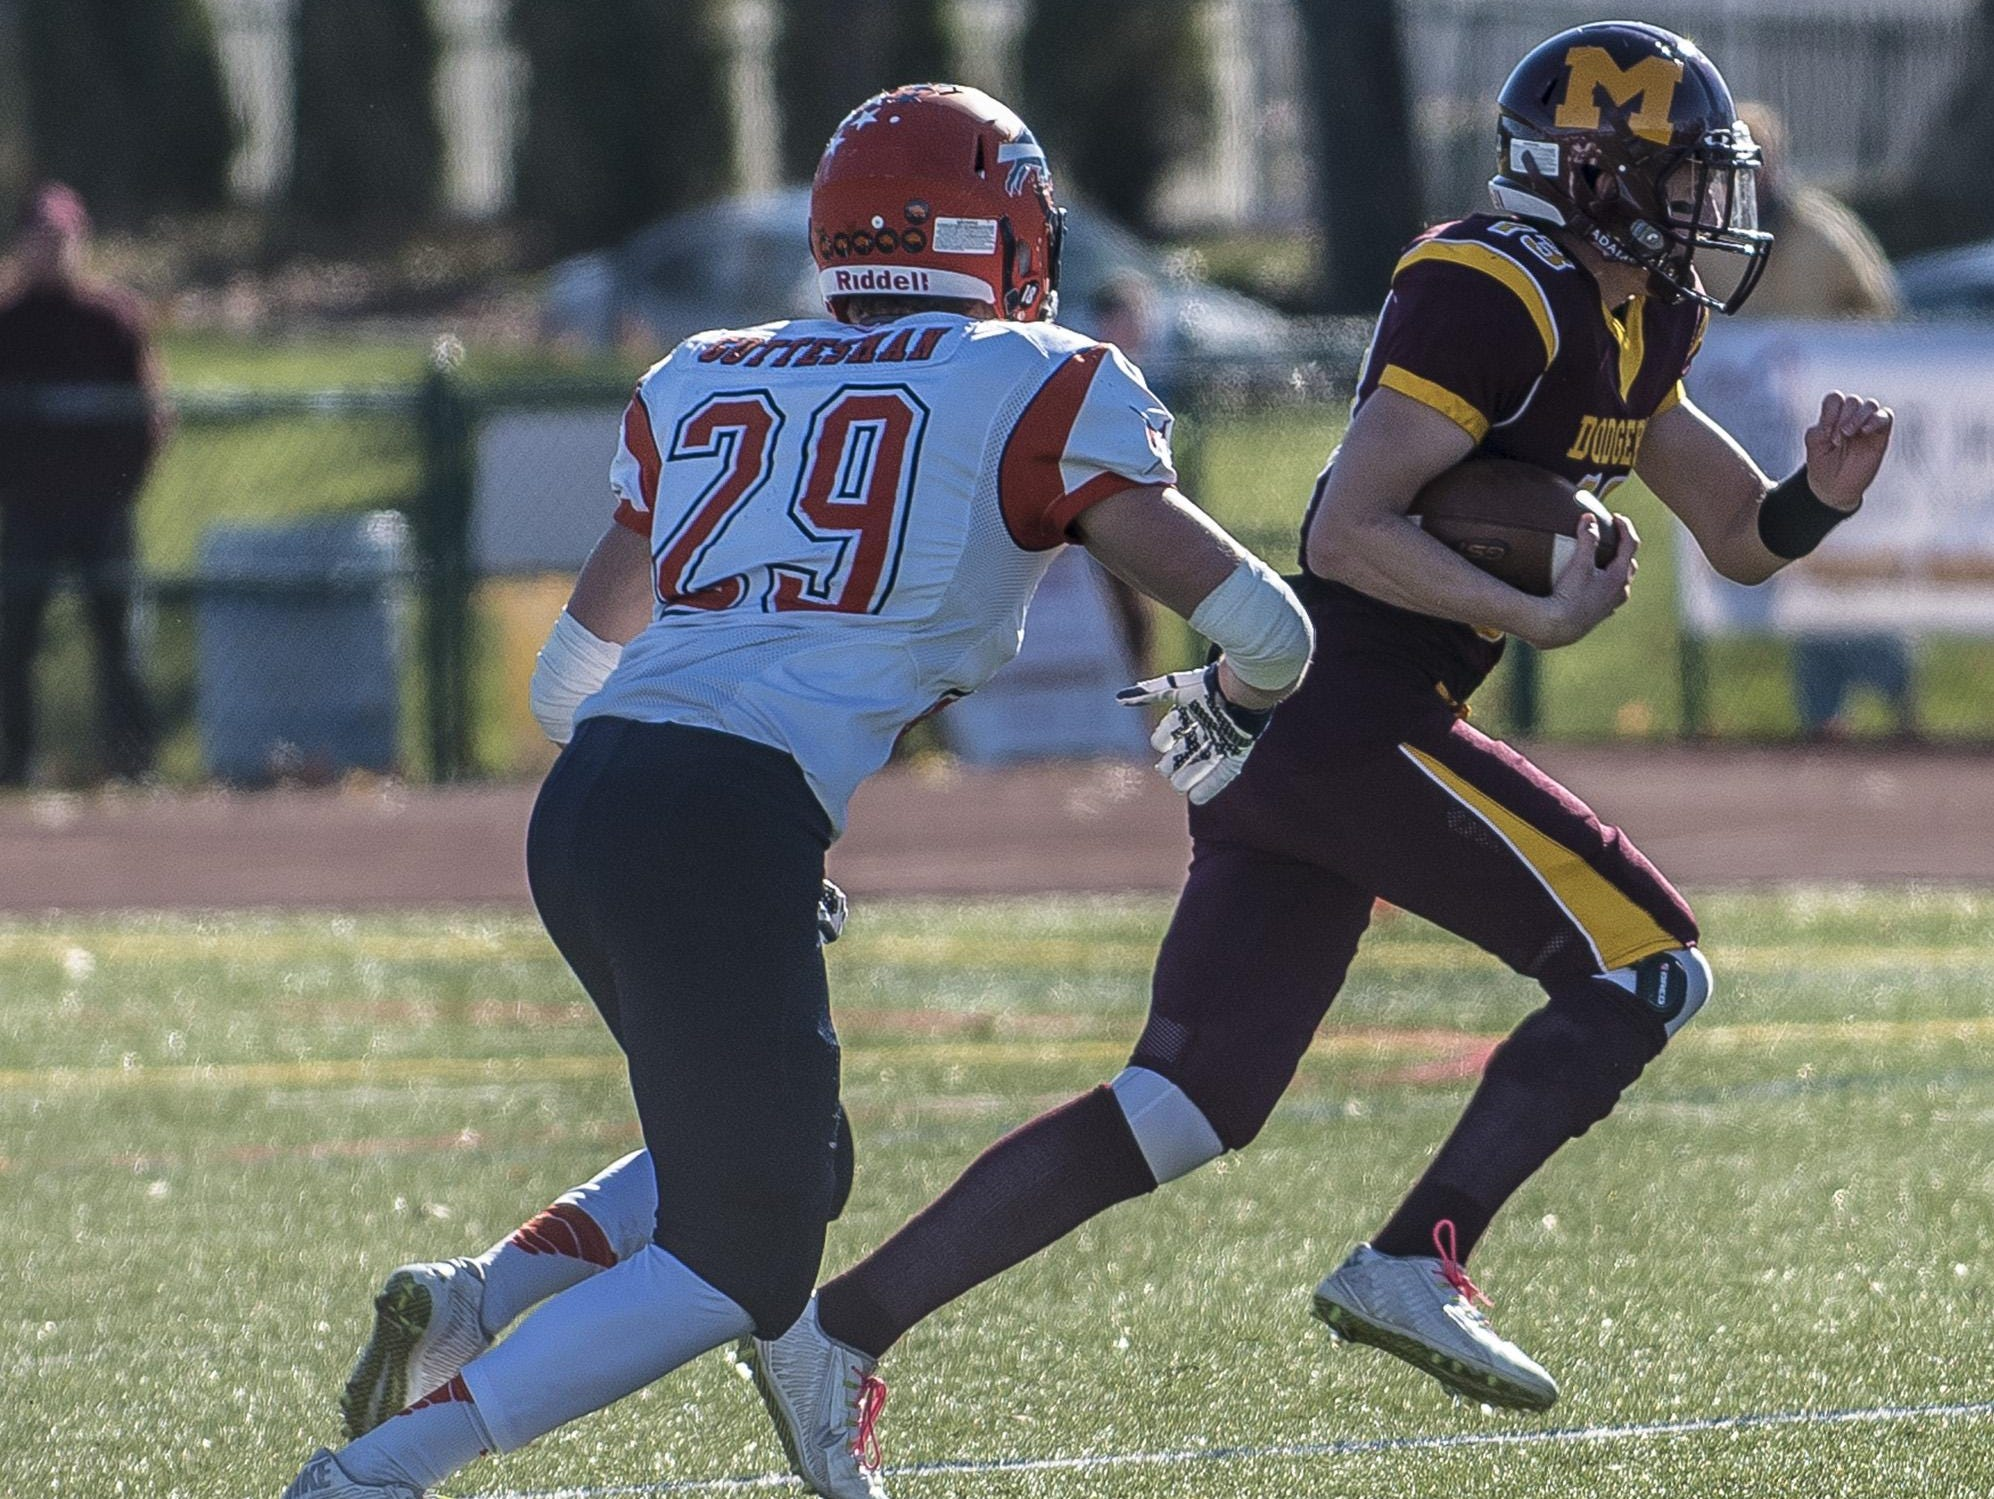 Laker Dylan Gottesman (29) chases Madison runner Nick Coviello (13) at the NJSIAA North 2 Group II opening round playoff at Madison High in Madison, November 14, 2015.